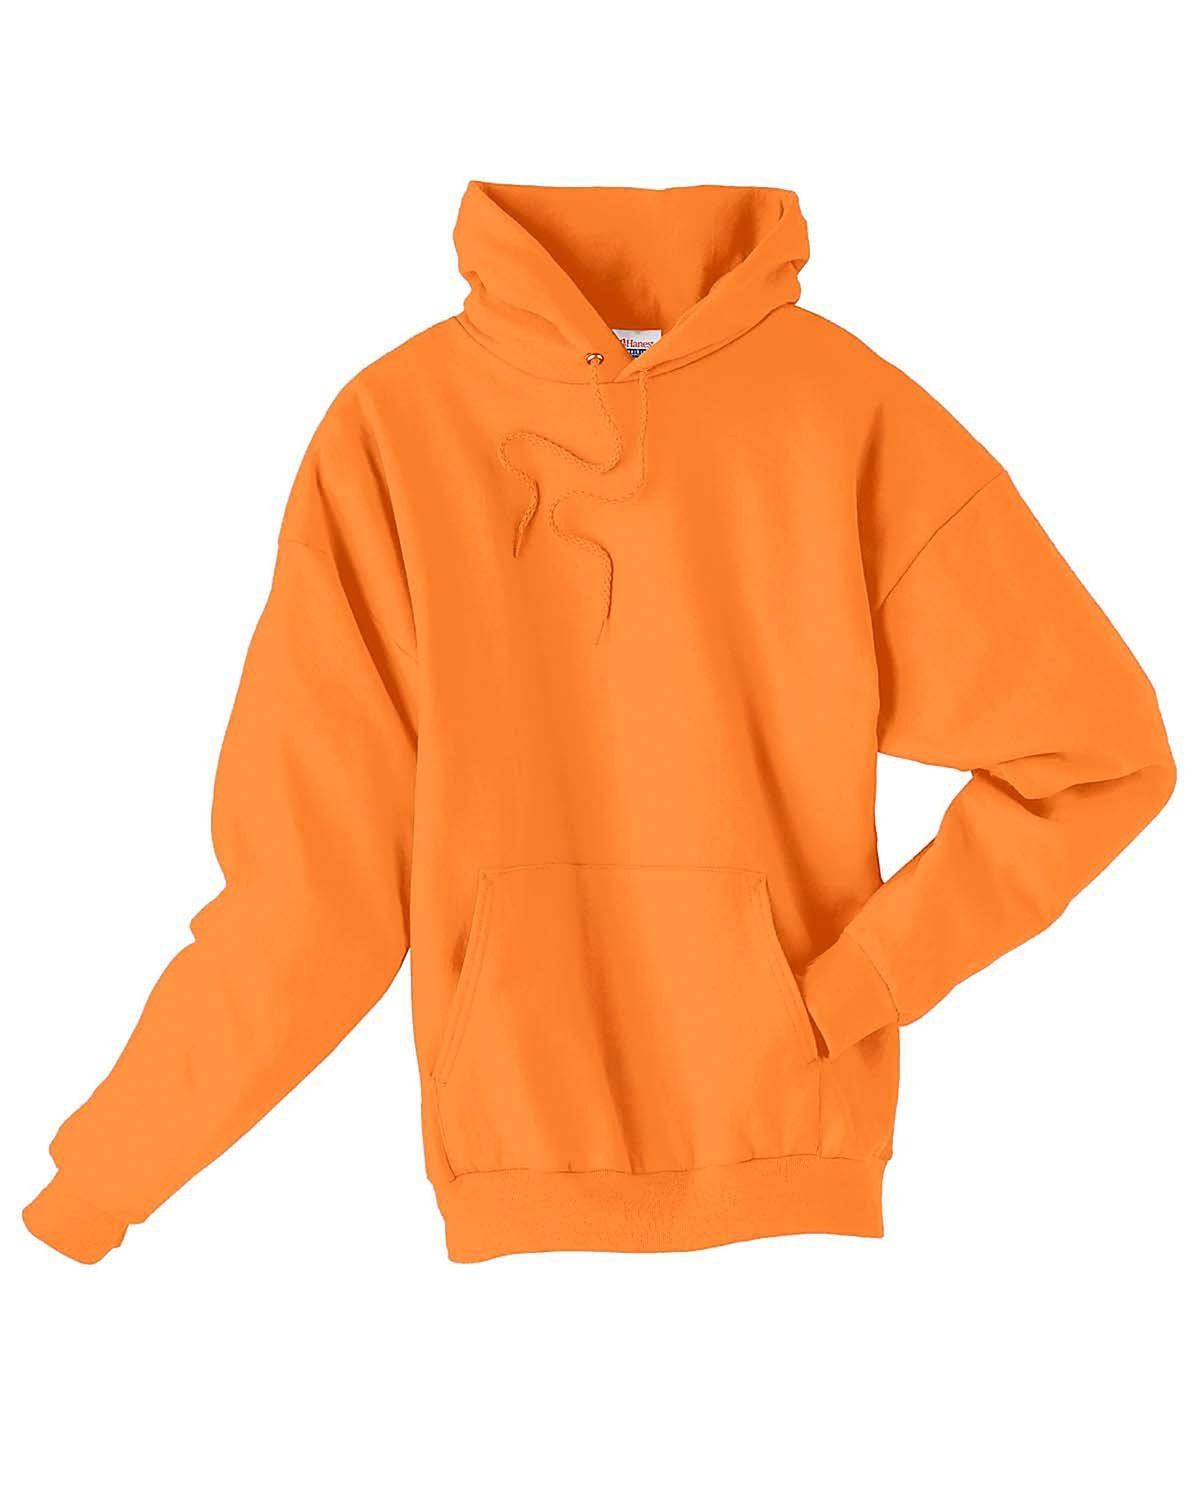 Hanes Unisex Ecosmart® 50/50 Pullover Hooded Sweatshirt SAFETY ORANGE